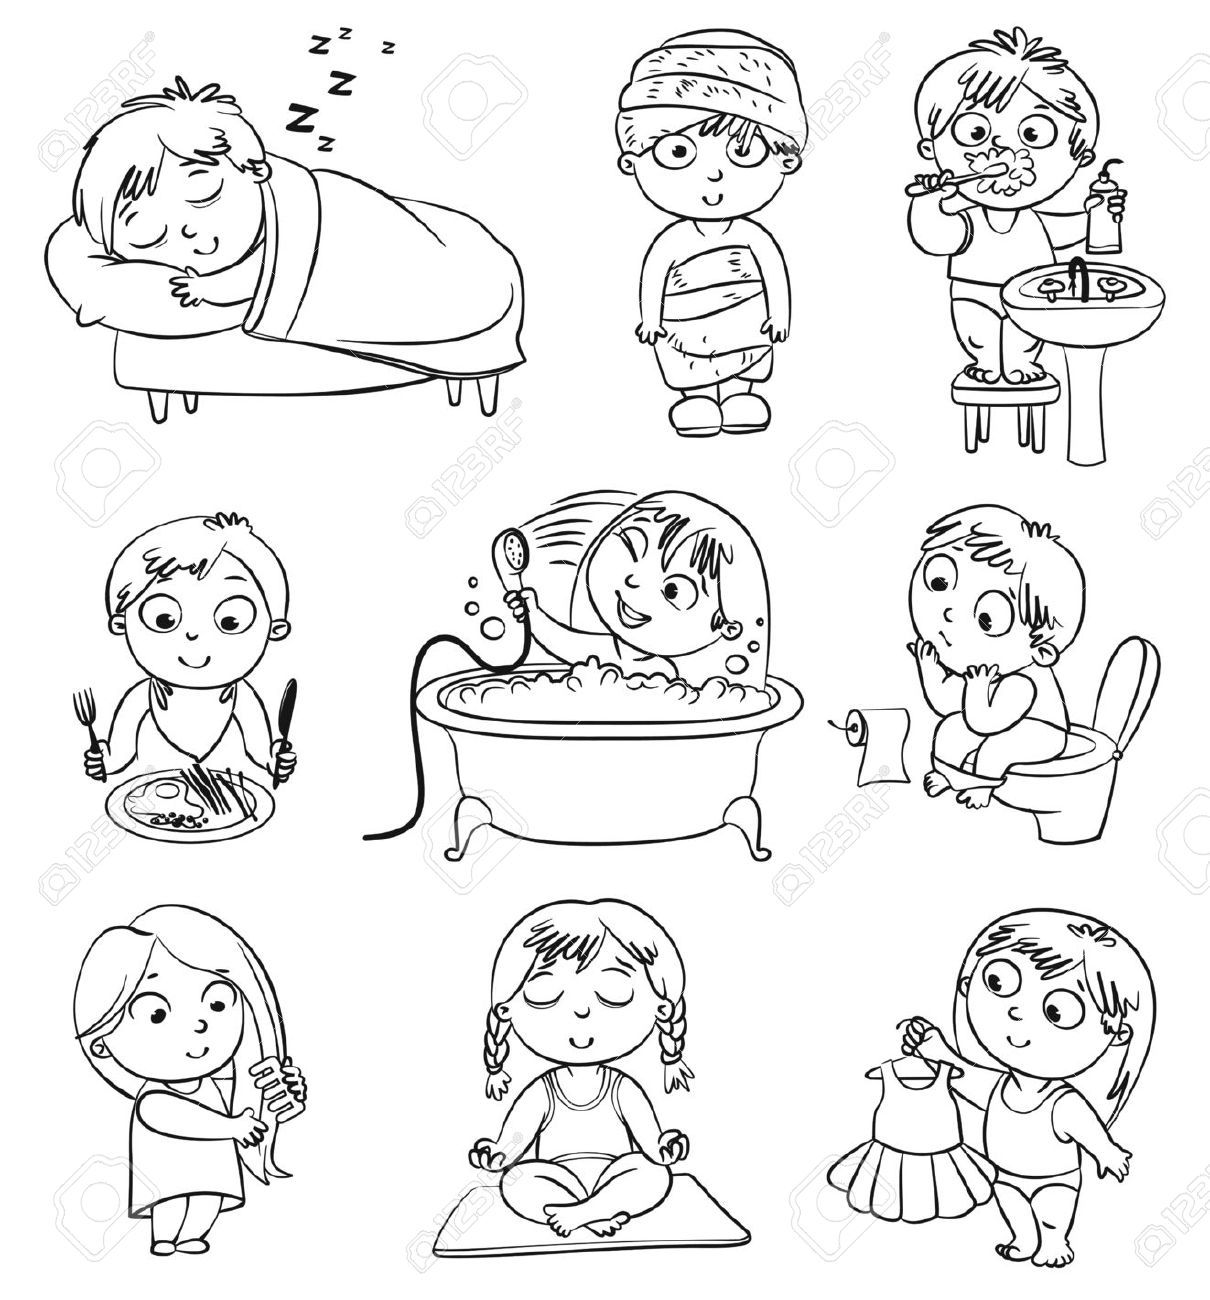 Personal hygiene items clipart black and white vector library library Good Health Habits Cliparts Black And White - clipartsgram ... vector library library